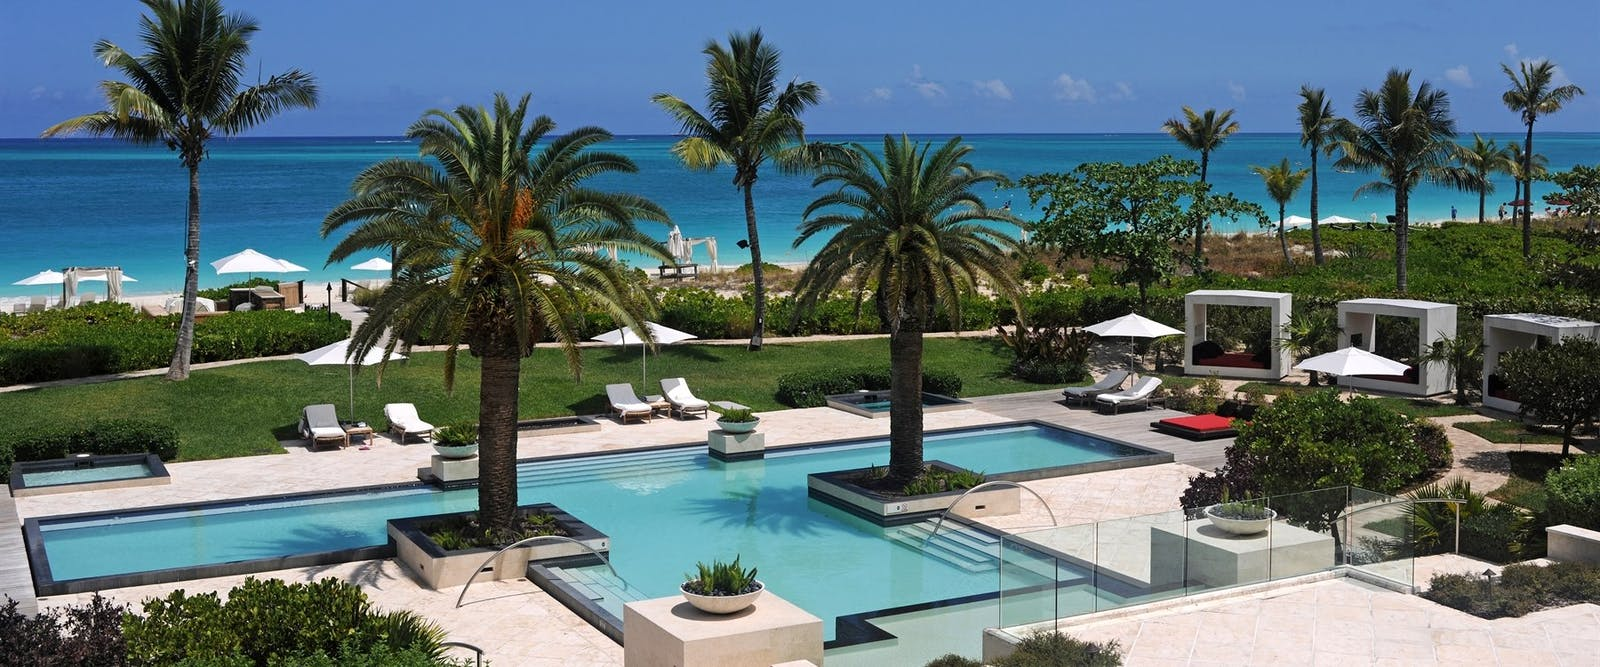 Estate Pool at Grace Bay Club, Turks And Caicos